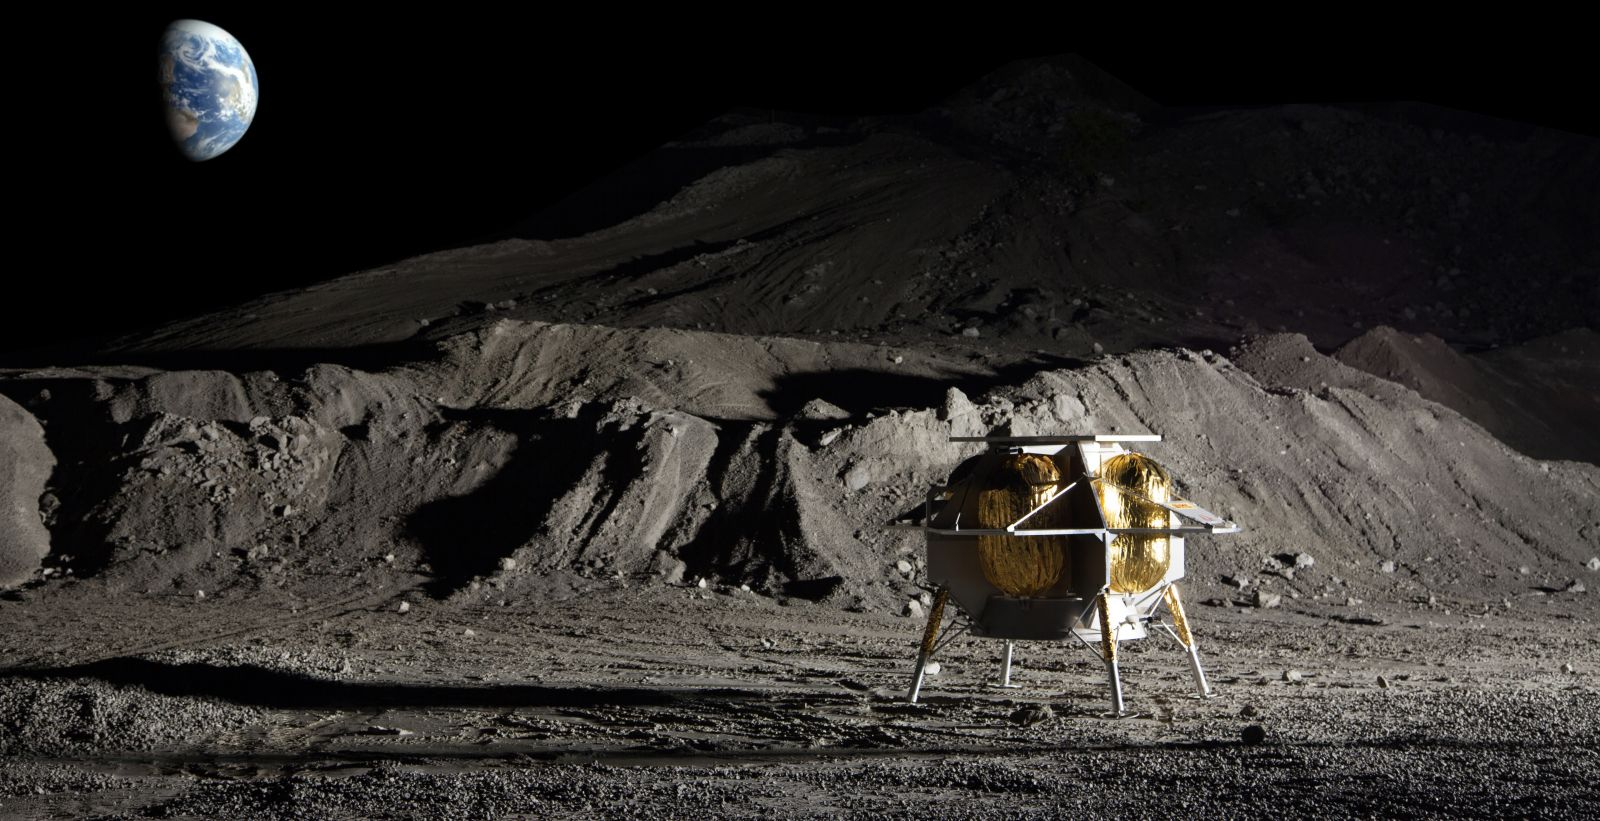 An illustration of Astrobotic's Peregrine lander on the Moon's surface. It was one of nine companies selected as part of NASA's Commercial Lunar Payload Services contract in November 2018. Image Credit: Astrobotic Technology